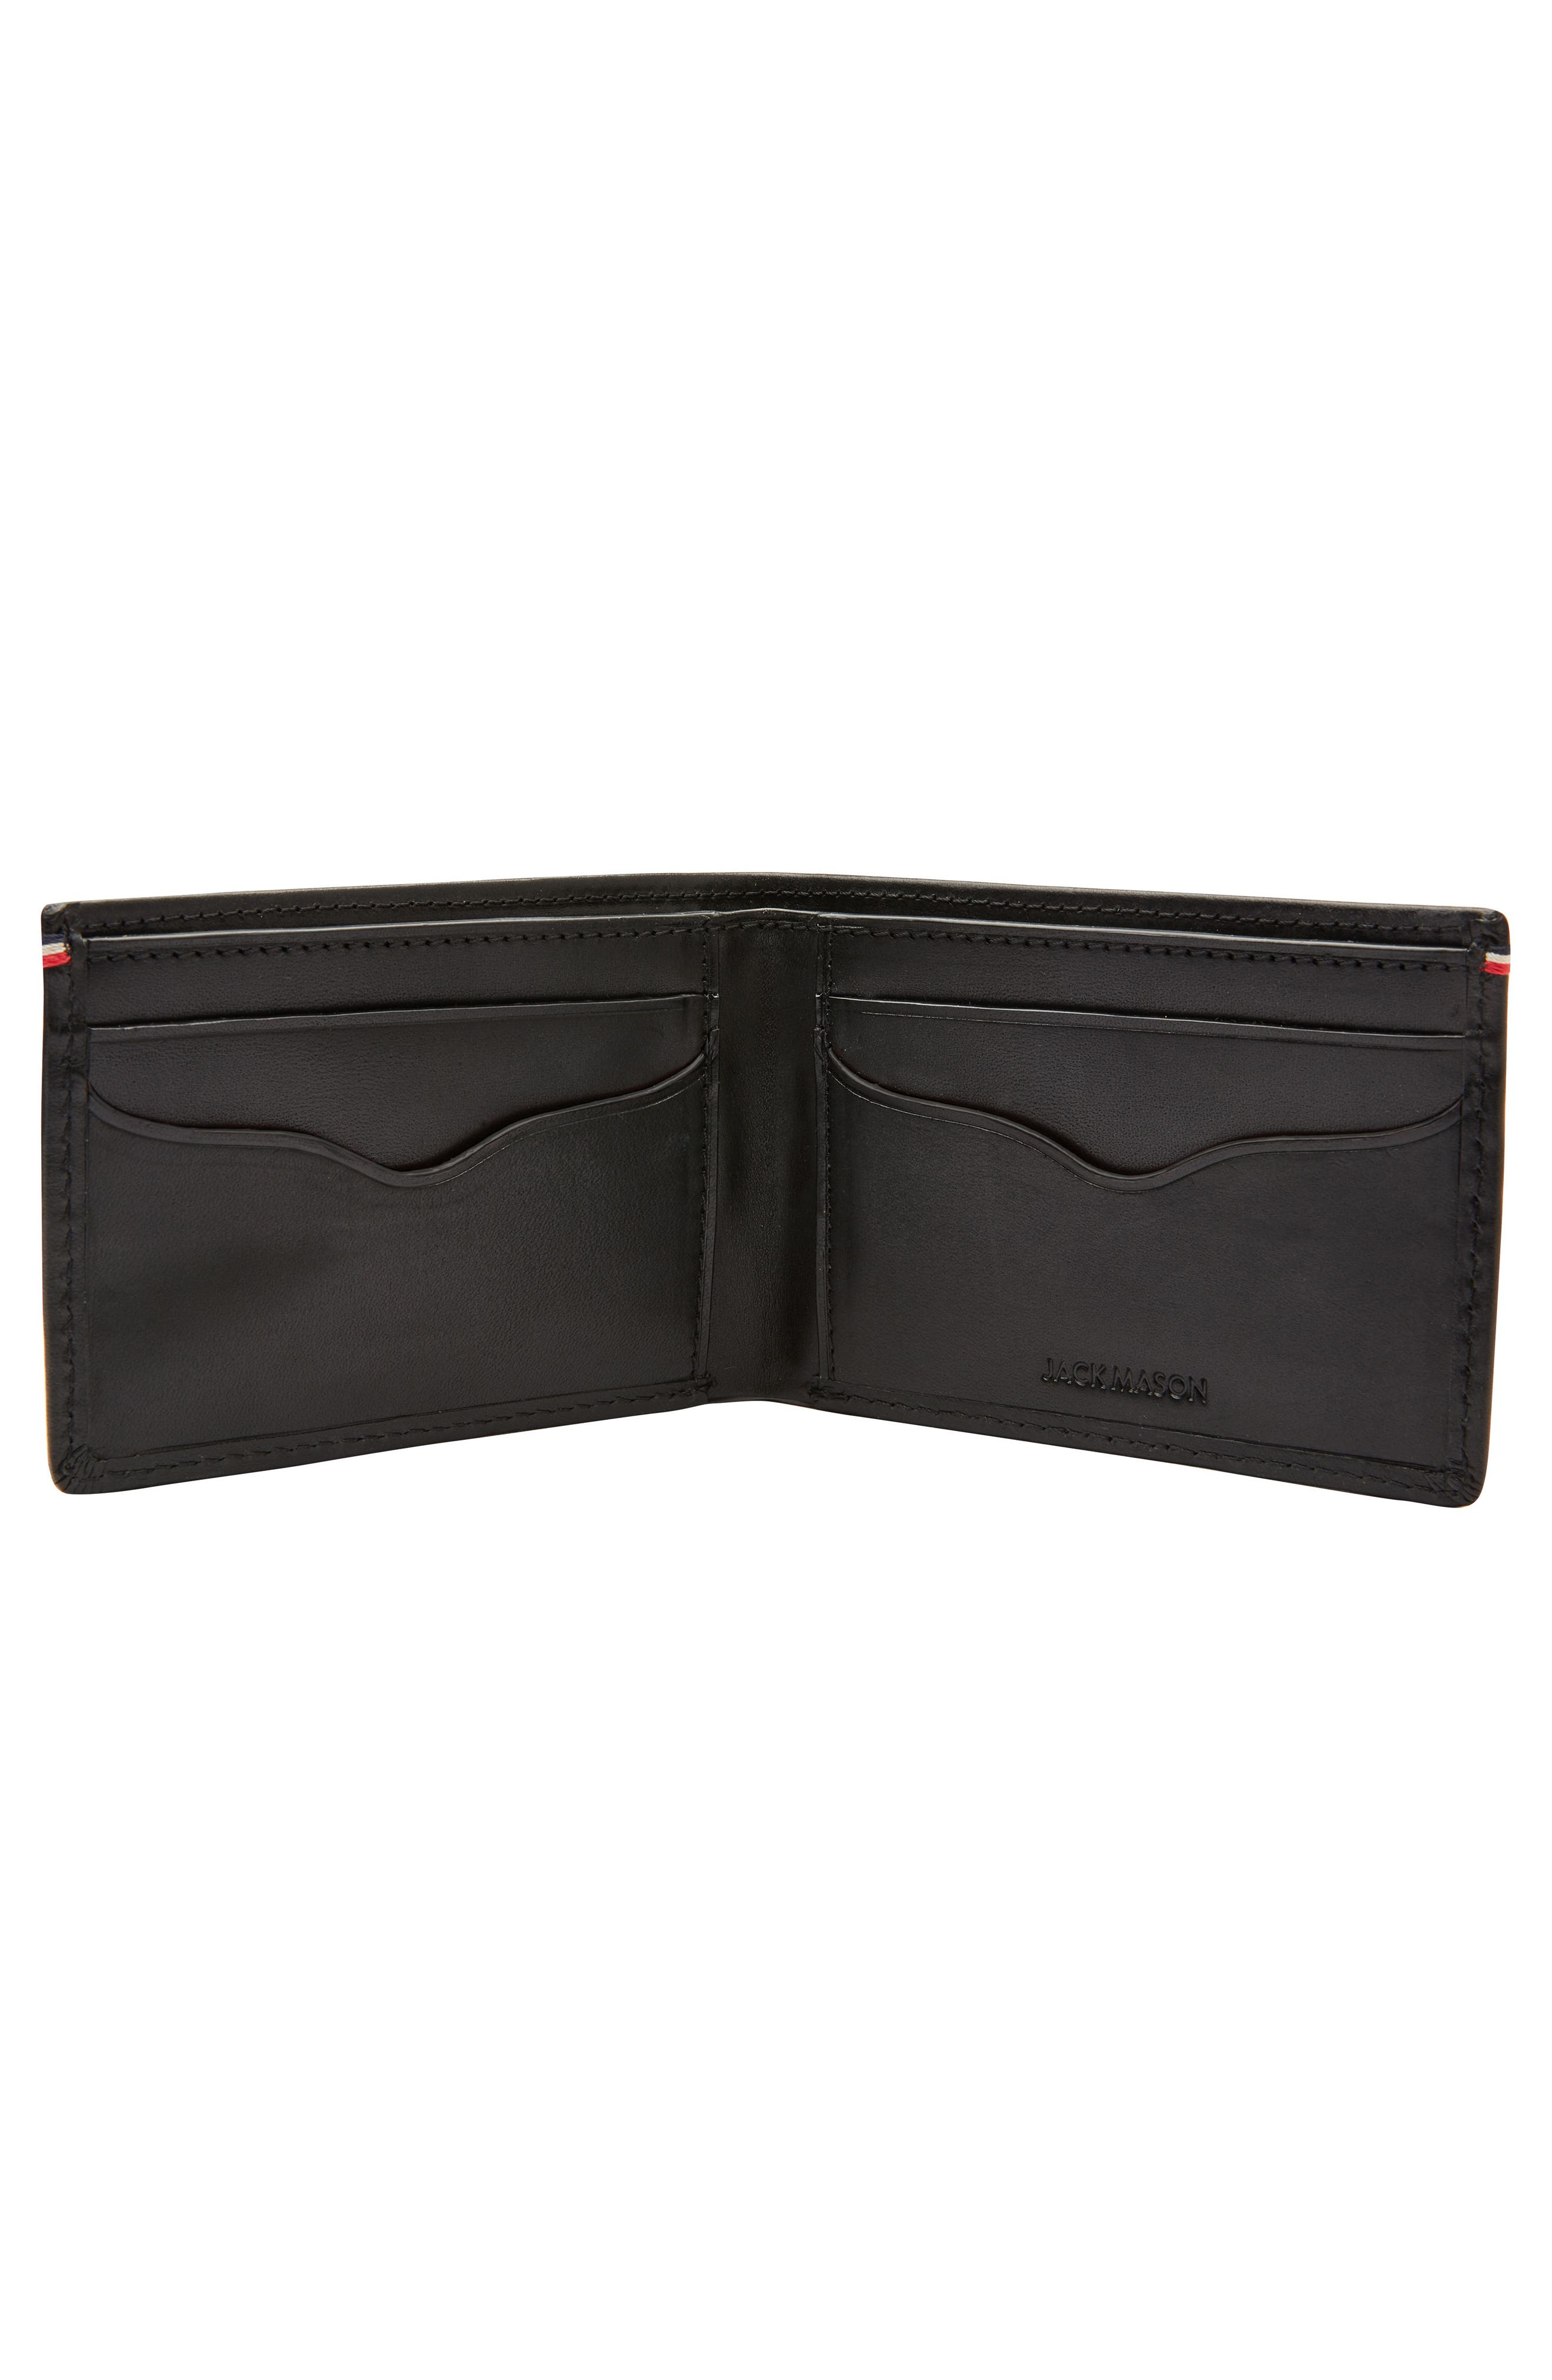 Core Slim Bifold Leather Wallet,                             Alternate thumbnail 2, color,                             001